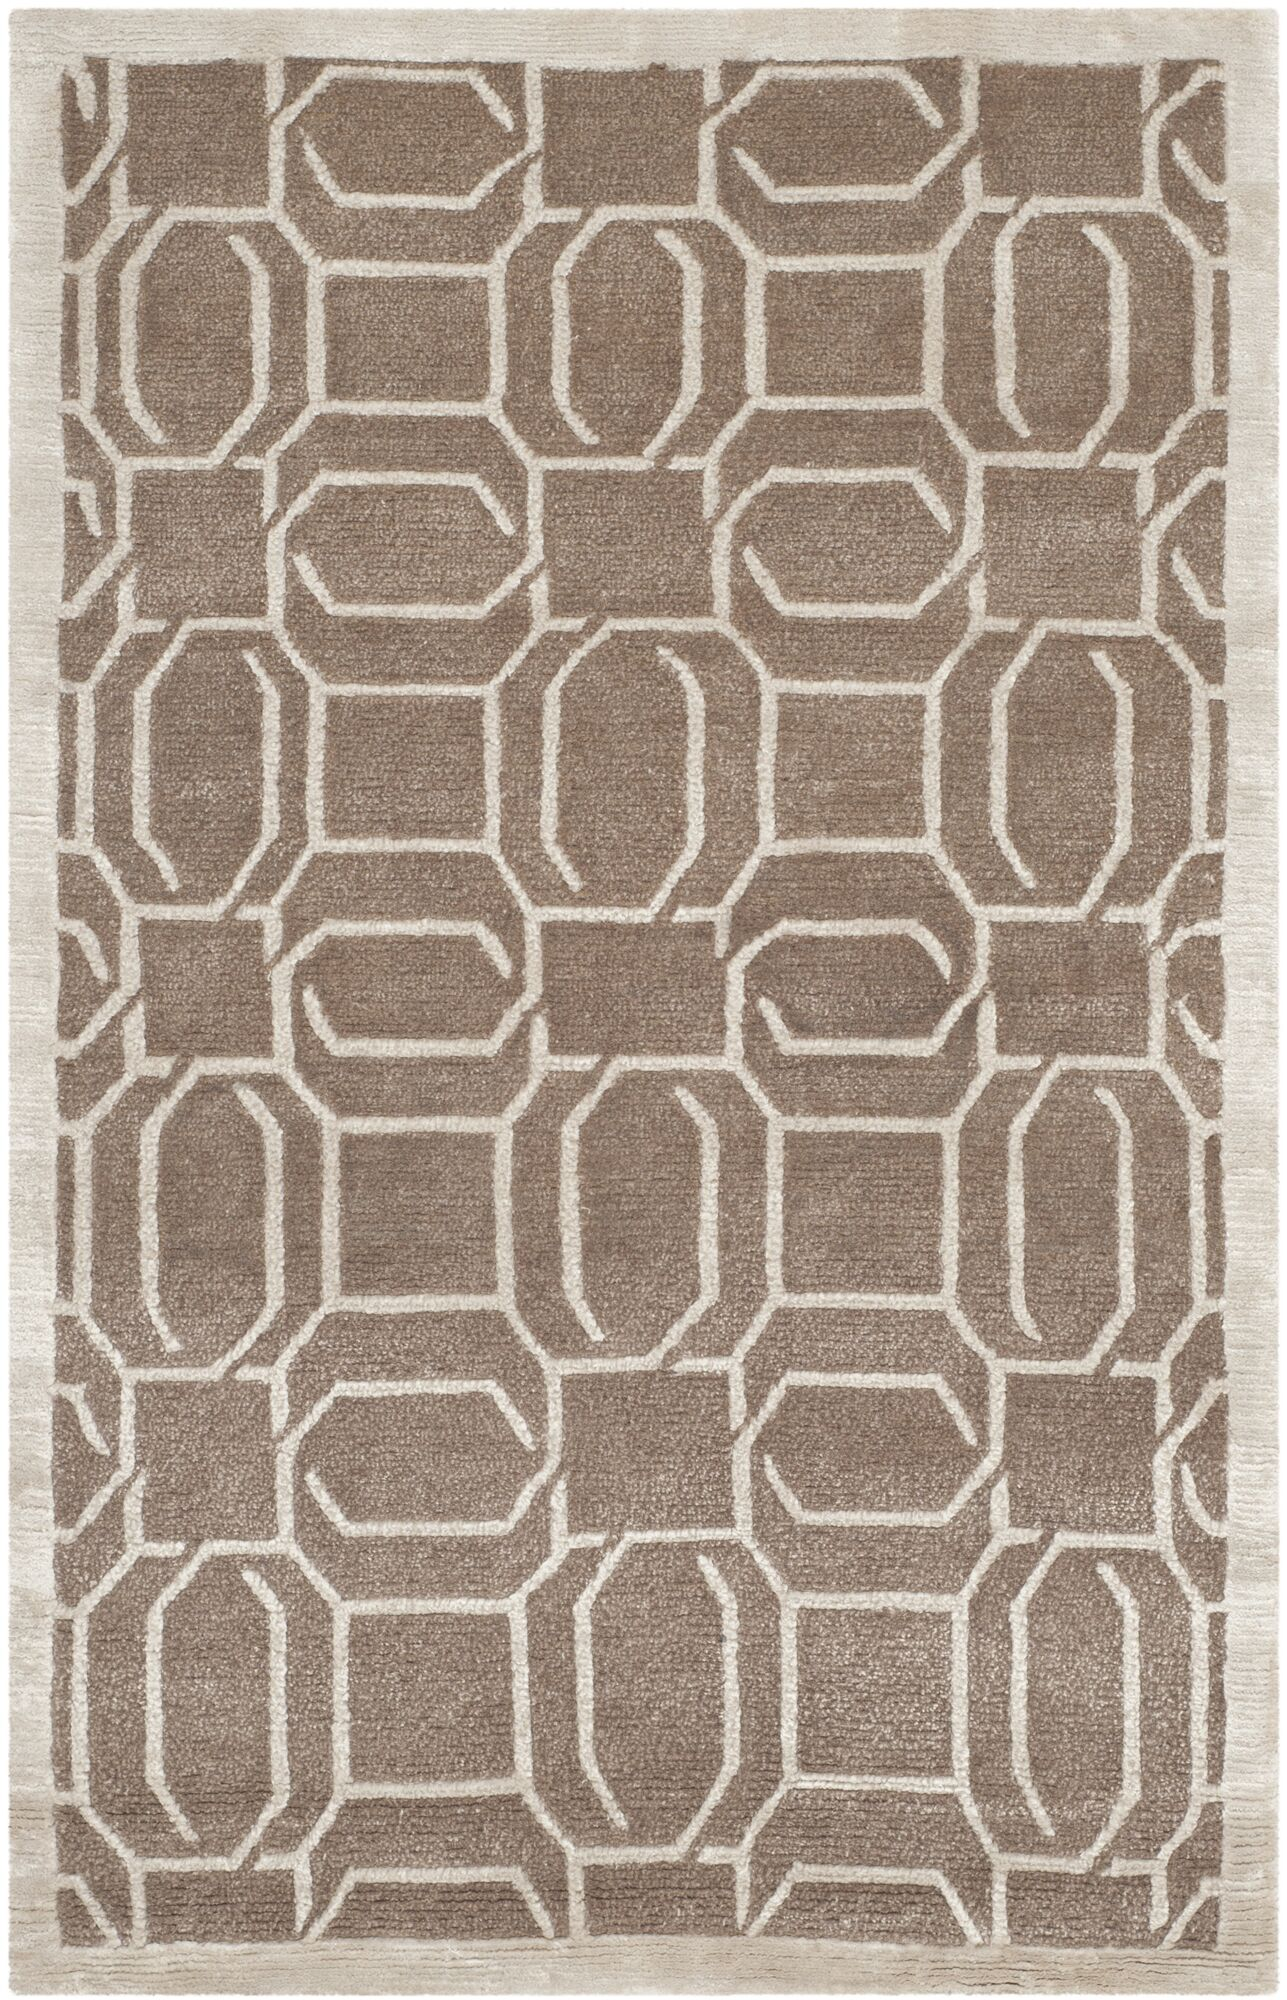 Hudnall Hand-Knotted Camel Area Rug Rug Size: Rectangle 2' x 3'